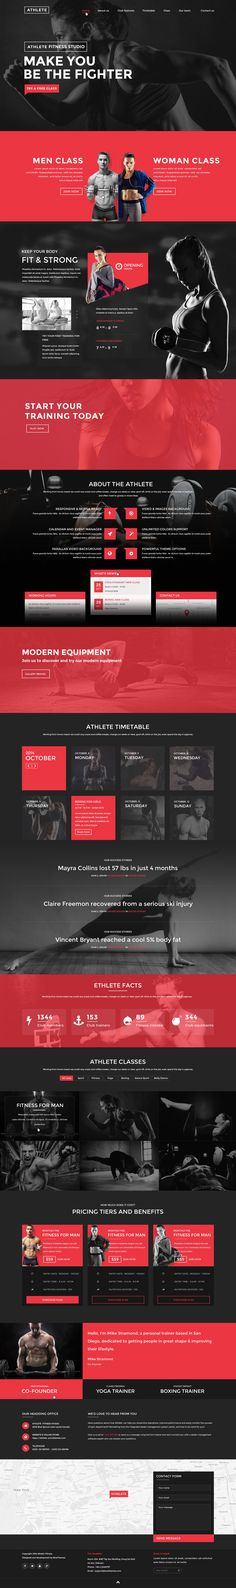 Athlete - Fitness and Sport PSD Template #webinopoly.com